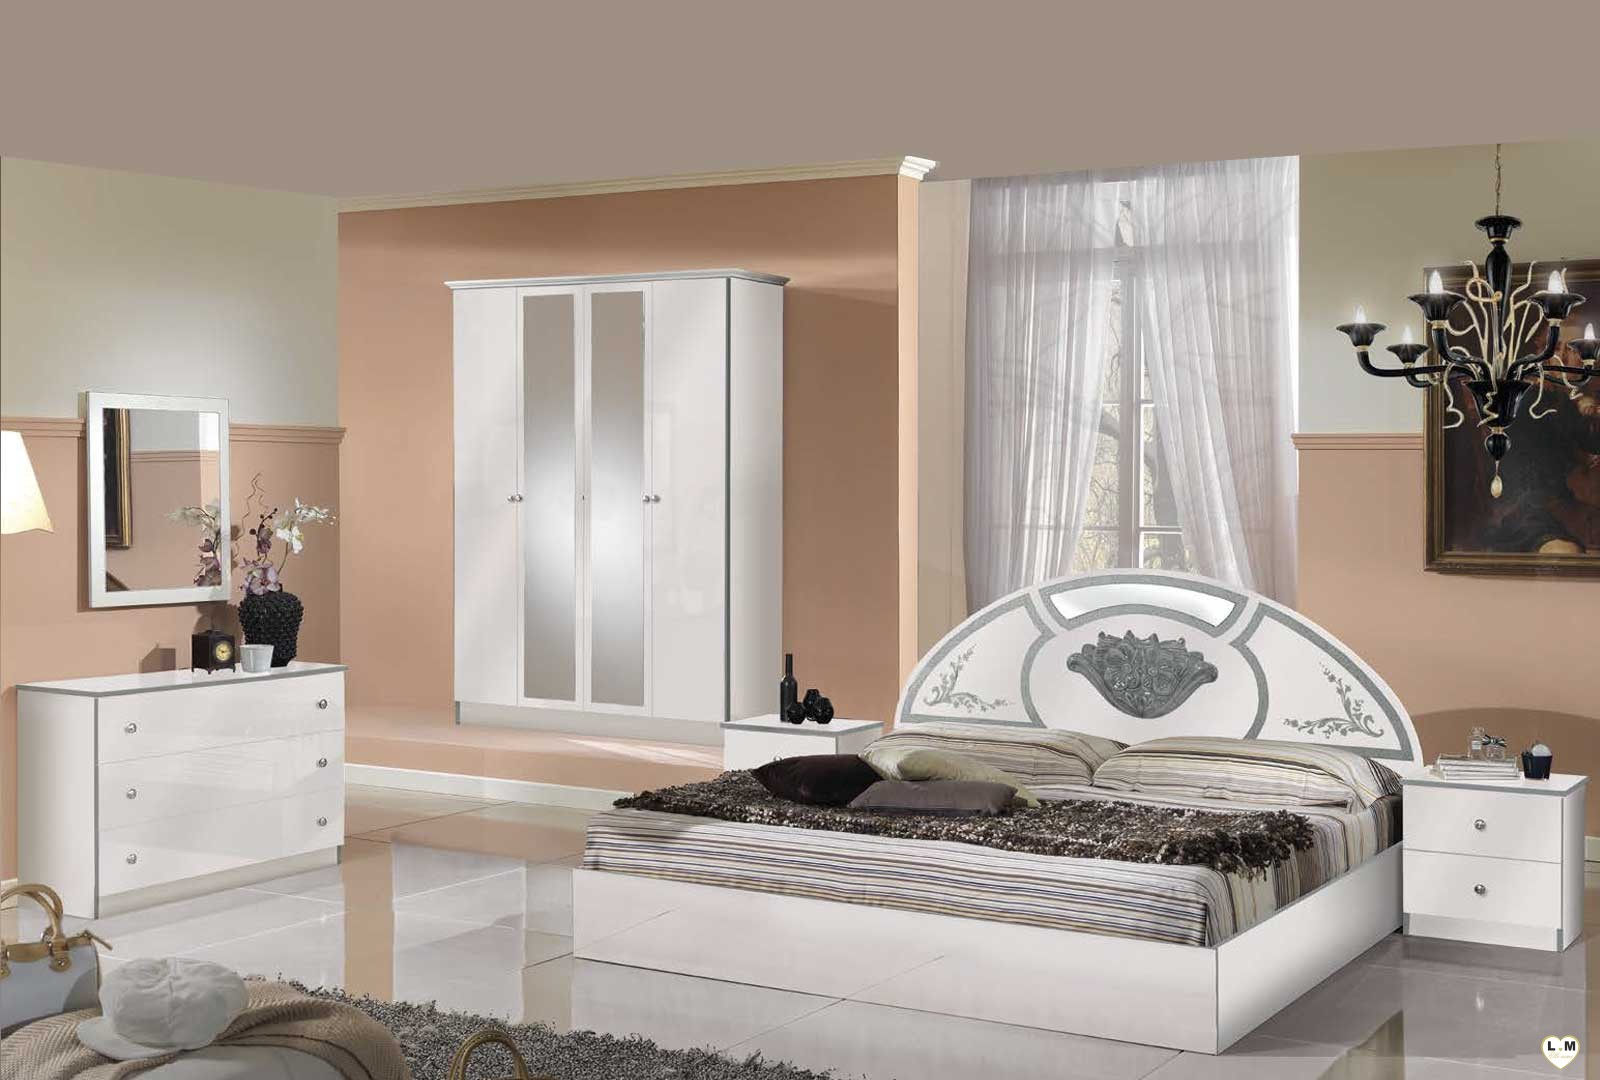 simple olinda laque blanc et argent ensemble chambre a coucher with chambre a coucher complete. Black Bedroom Furniture Sets. Home Design Ideas